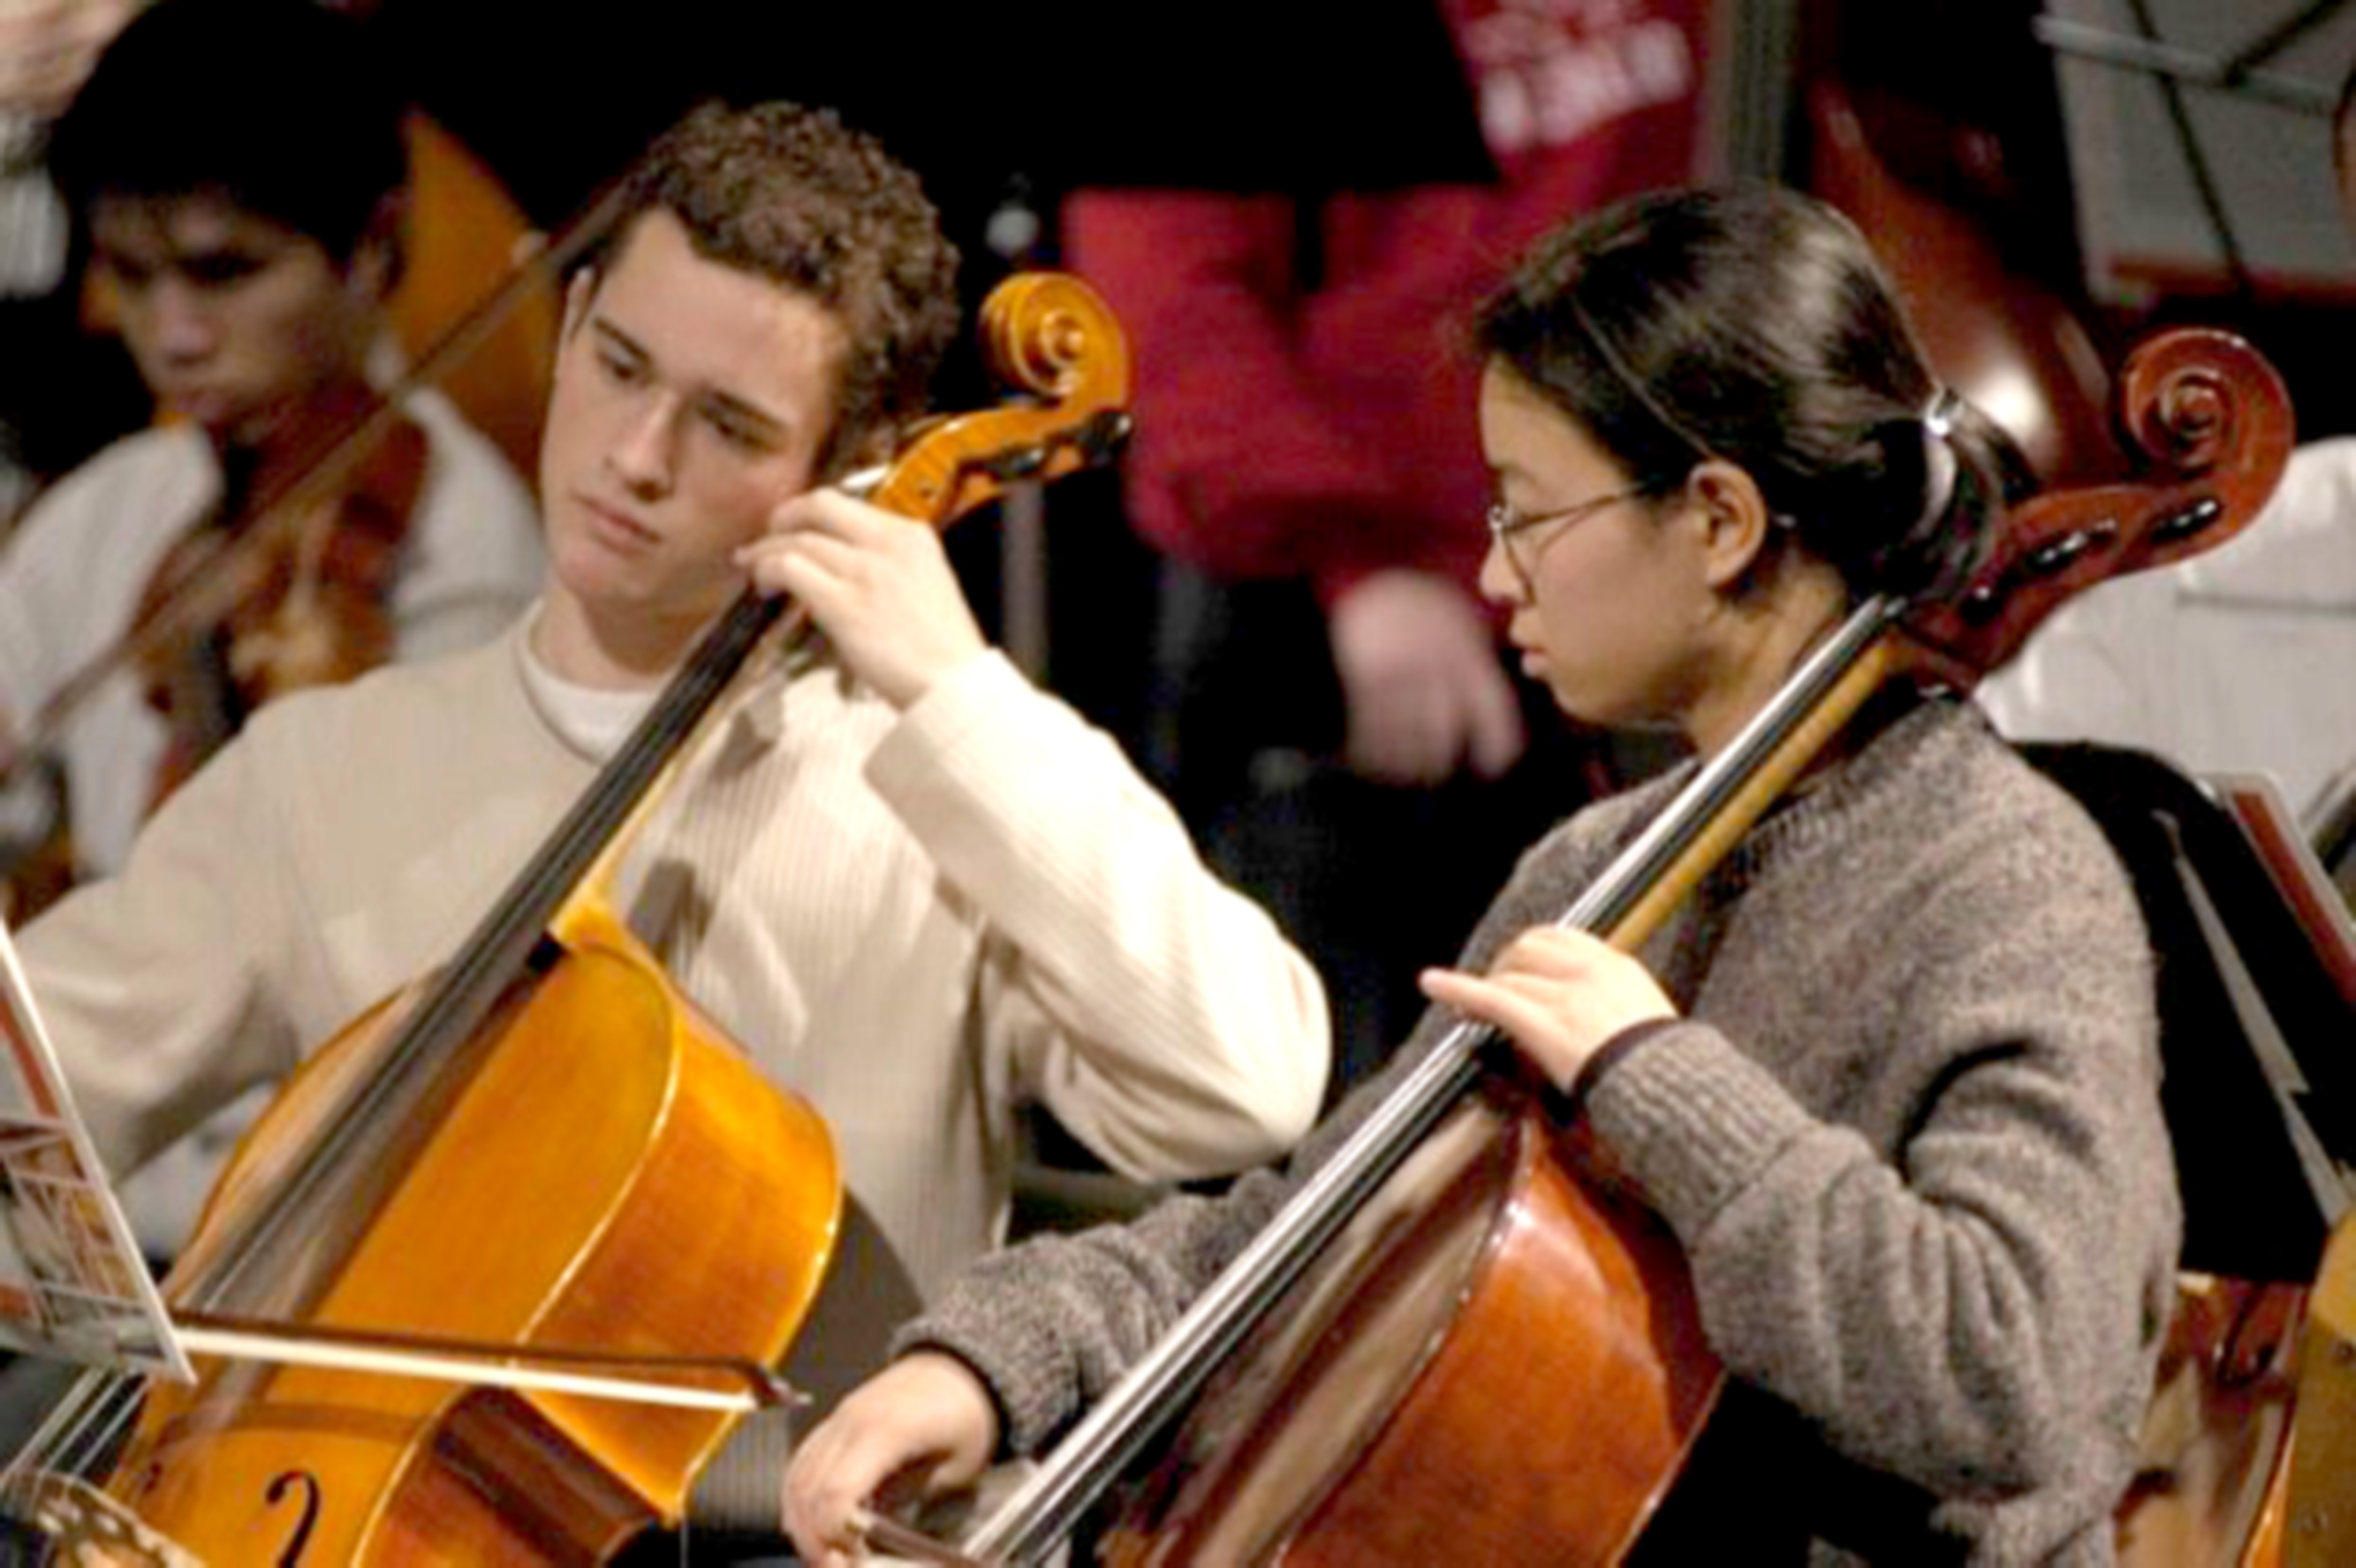 orchestra cellos